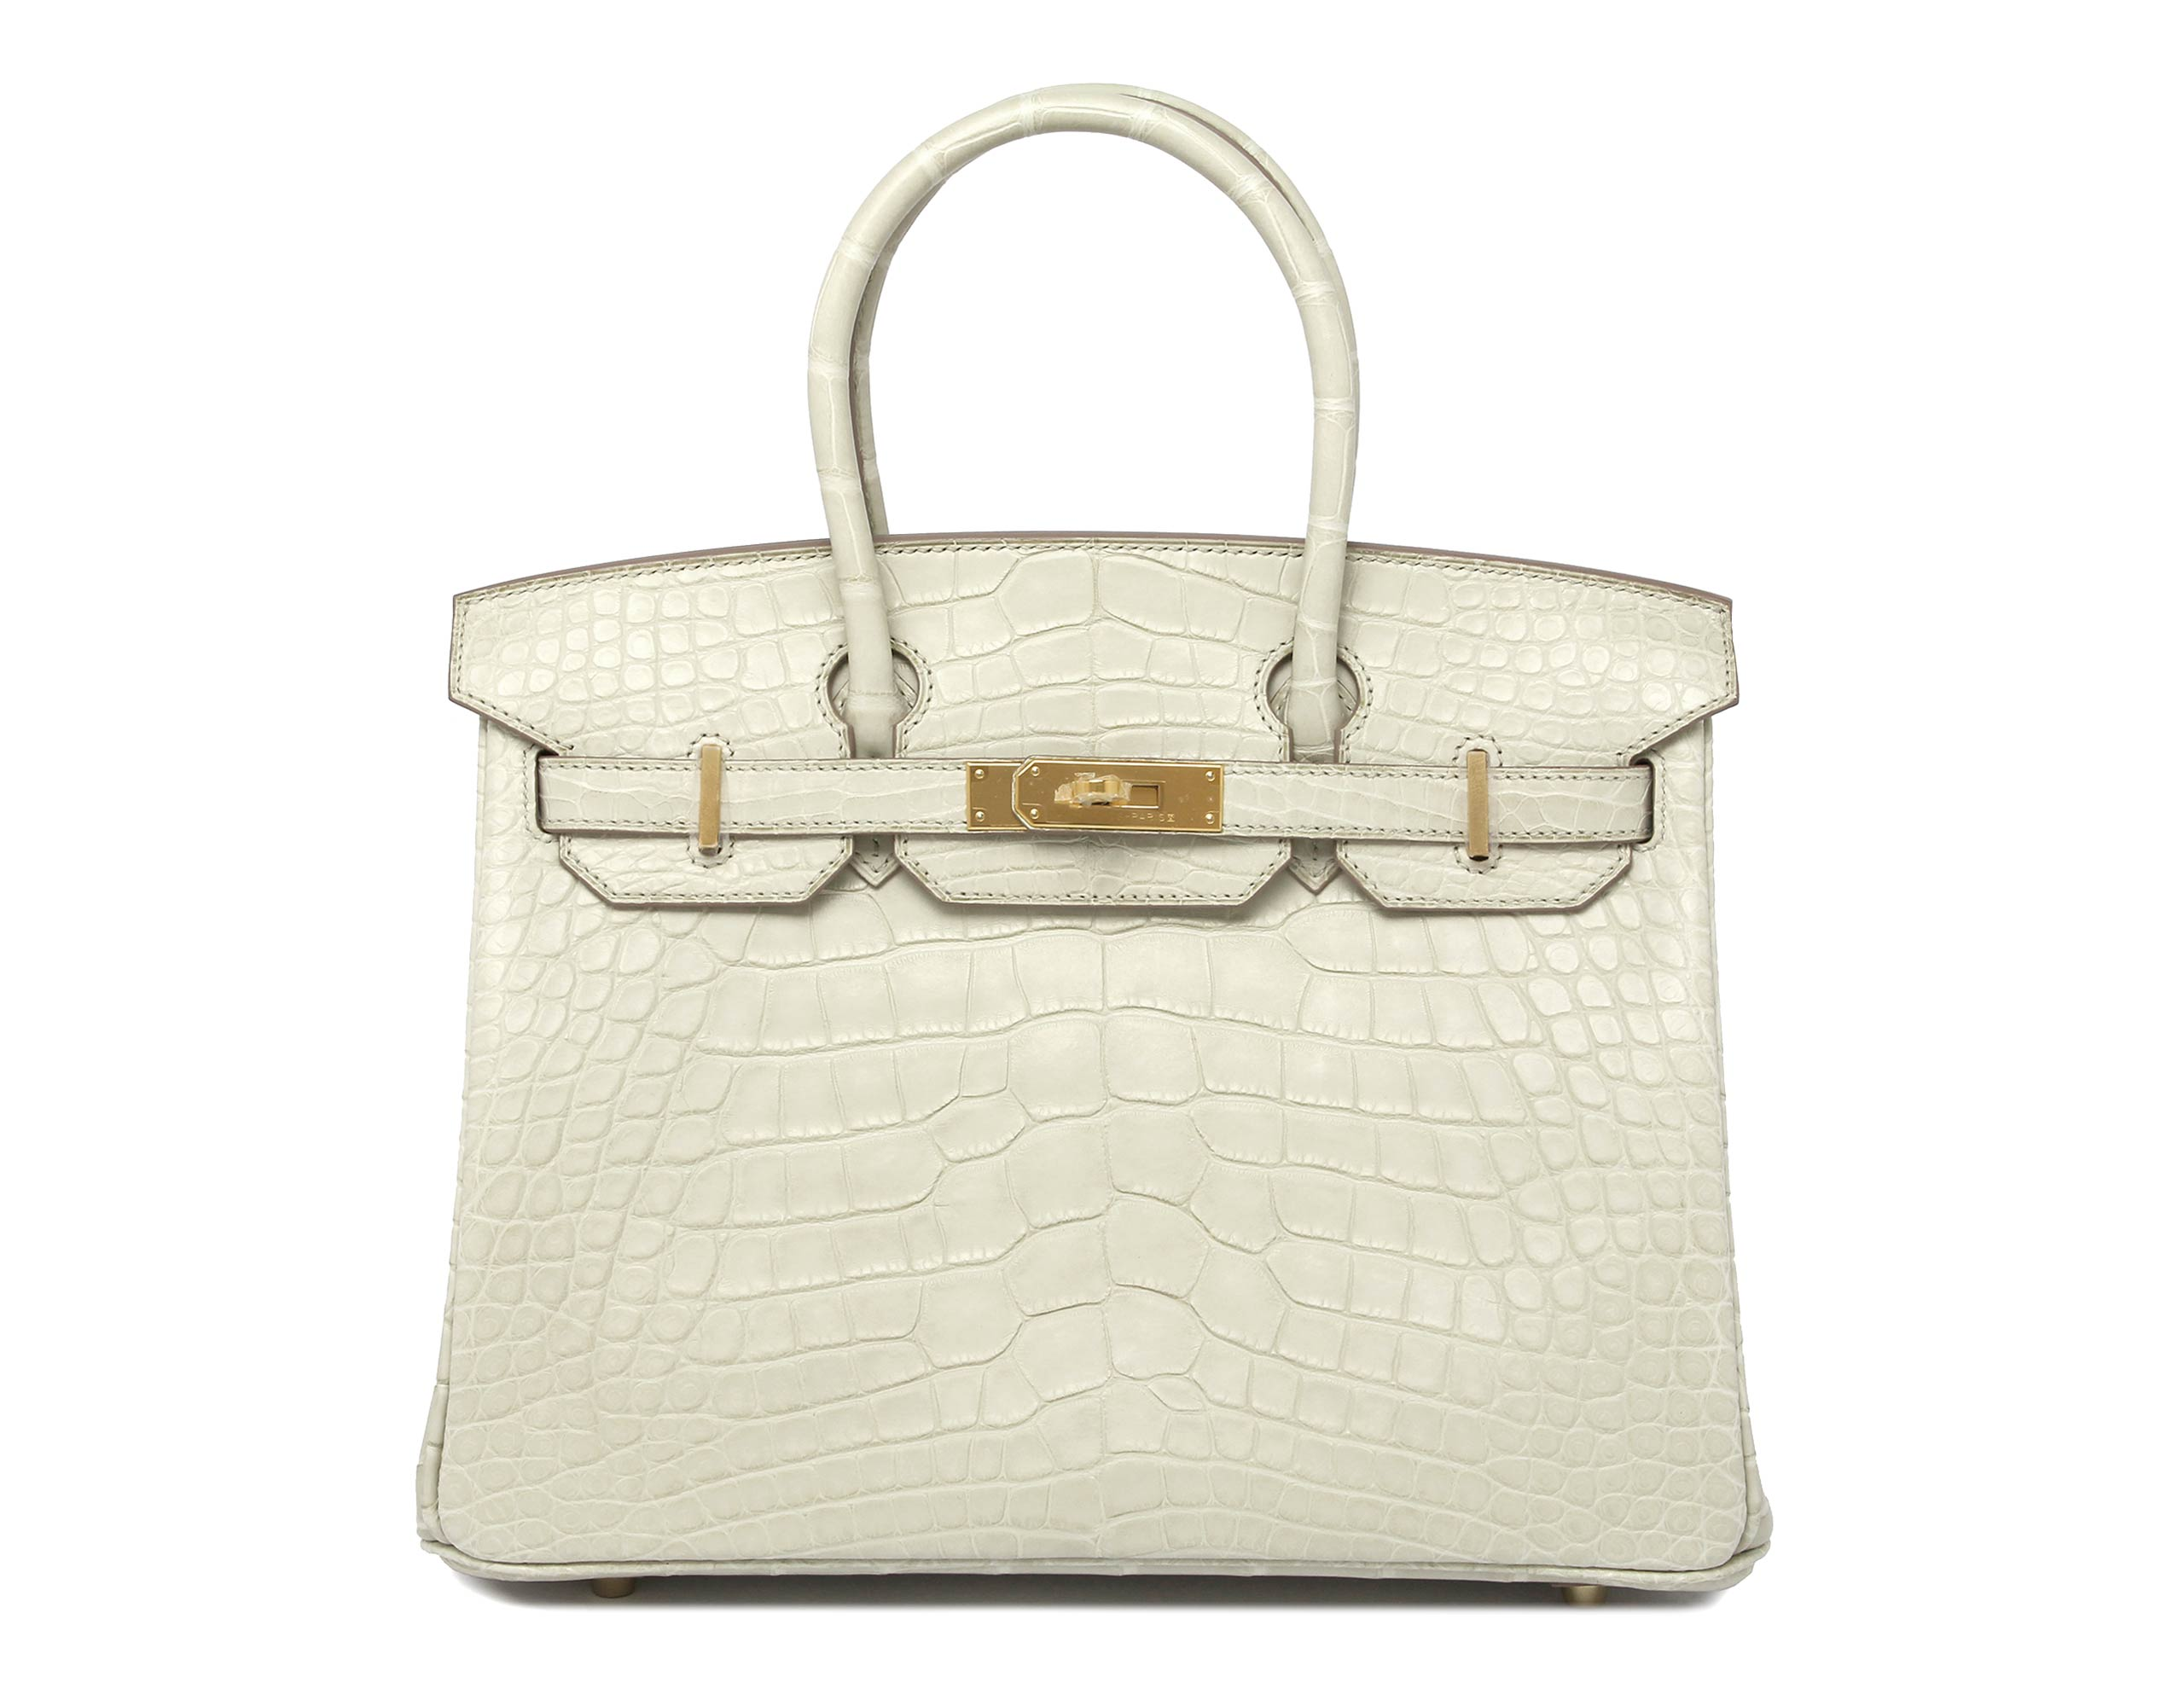 003f9993184ed Hermes Birkin Bags For Sale